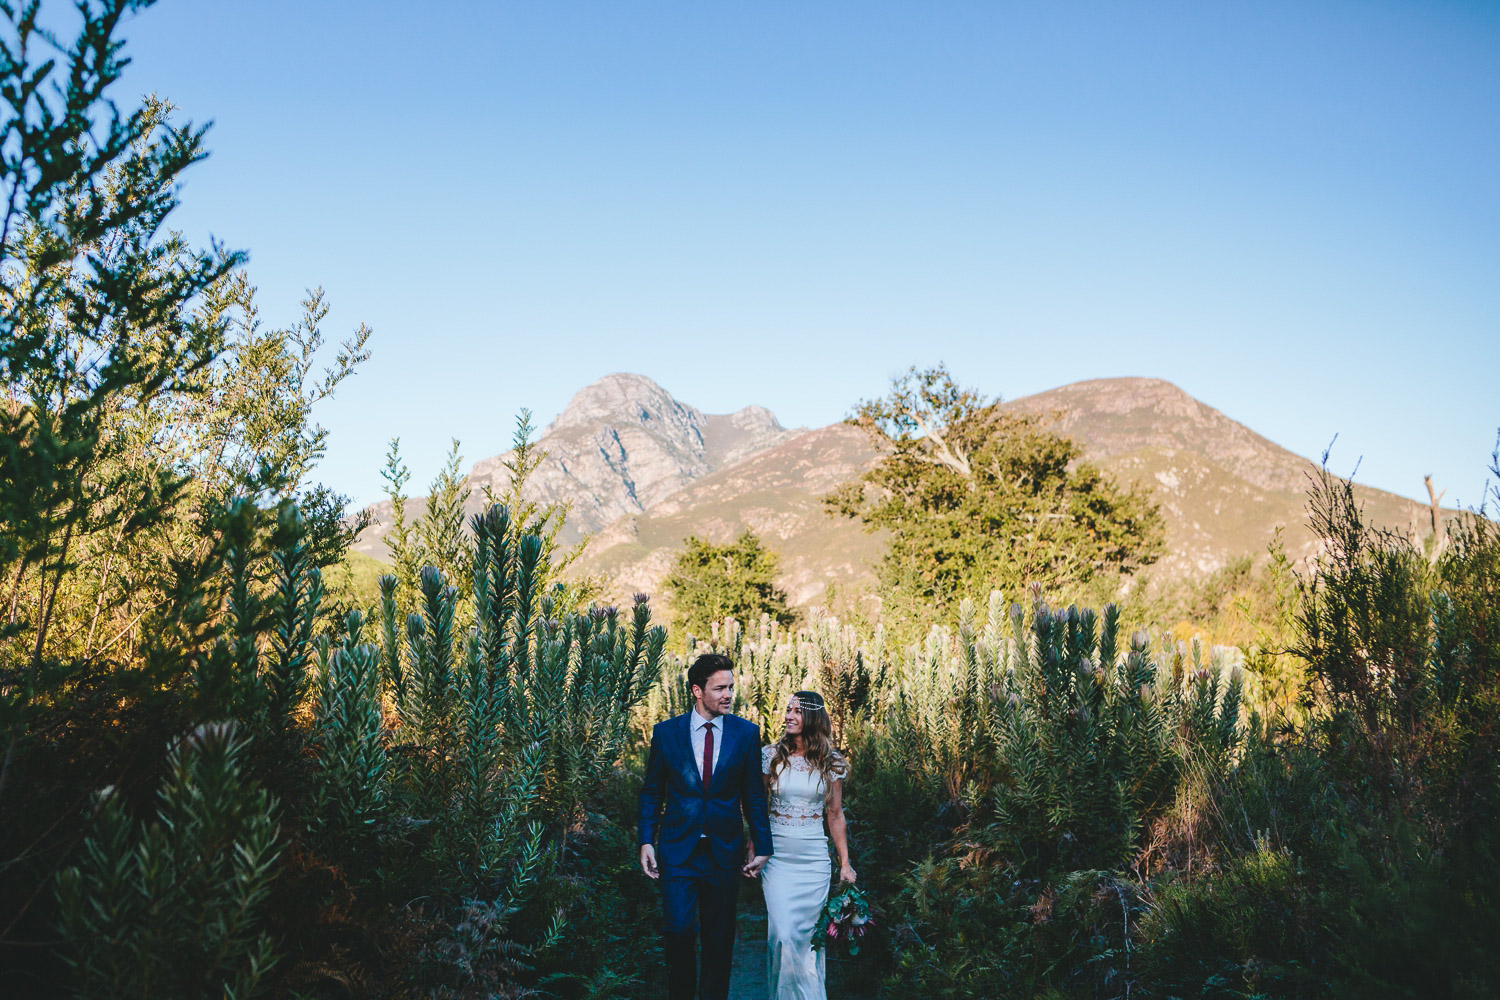 greyton-wedding-western-cape-photographer-river-bed-proteas-south-african129.jpg